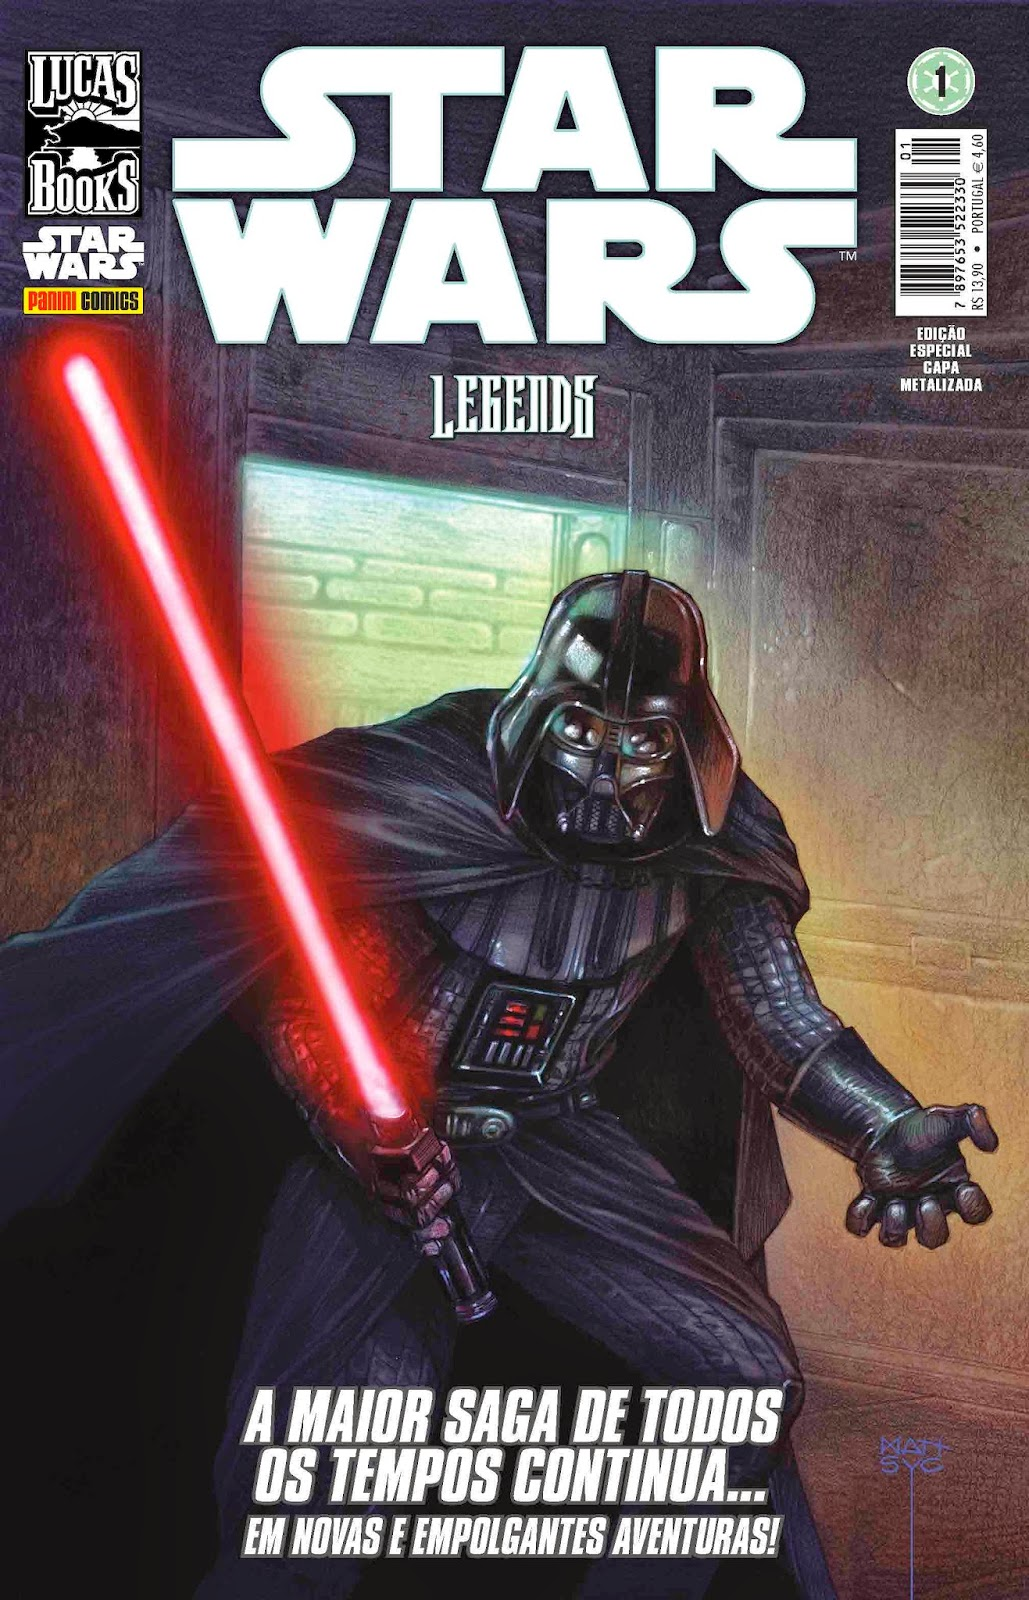 dia de star wars panini comics - May The 4th With You (Dia de Star Wars): tudo o que precisa saber